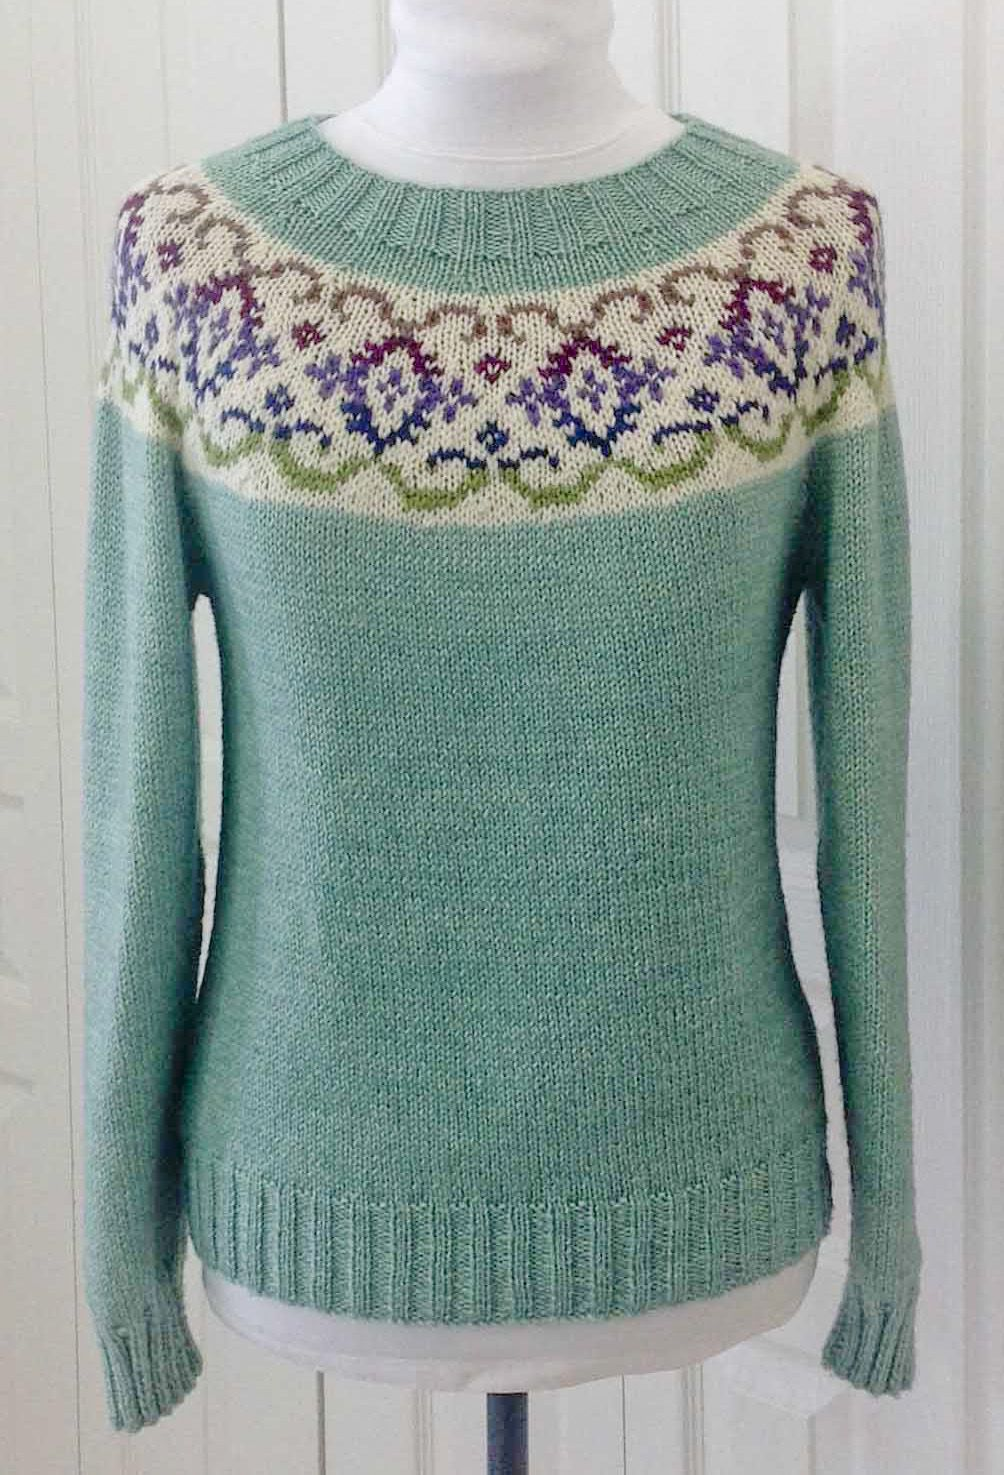 Fair Isle Knitting Projects Experienced Knitters Will Adore ...